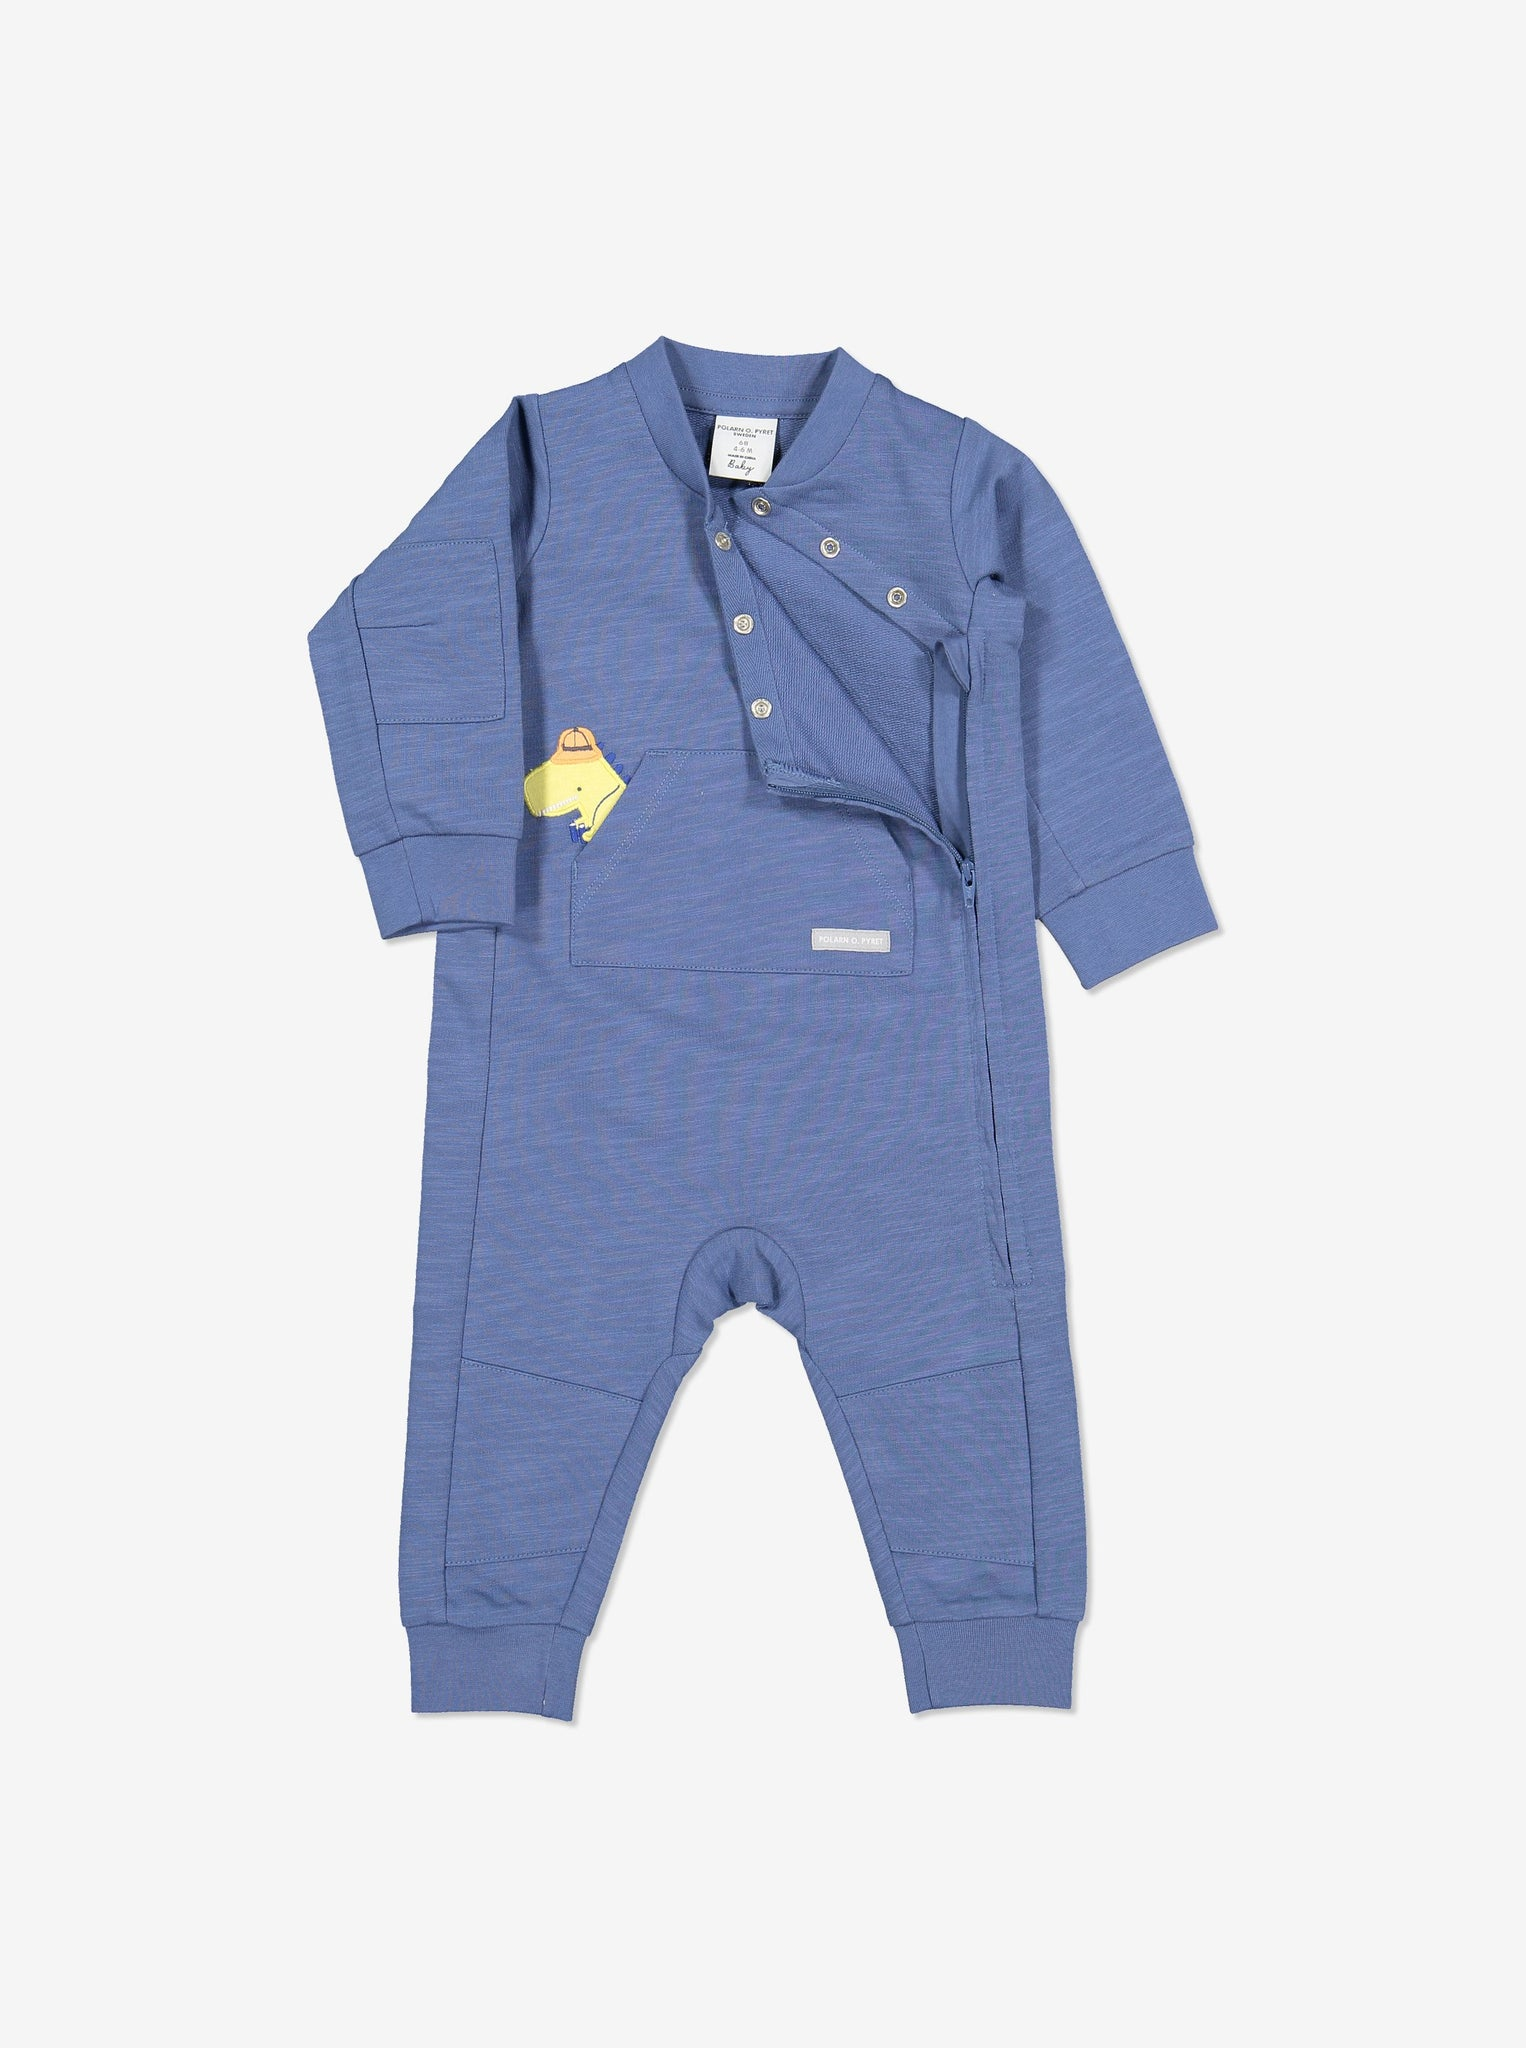 Dinosaur Applique Kids Romper-Unisex-2m-1y-Blue